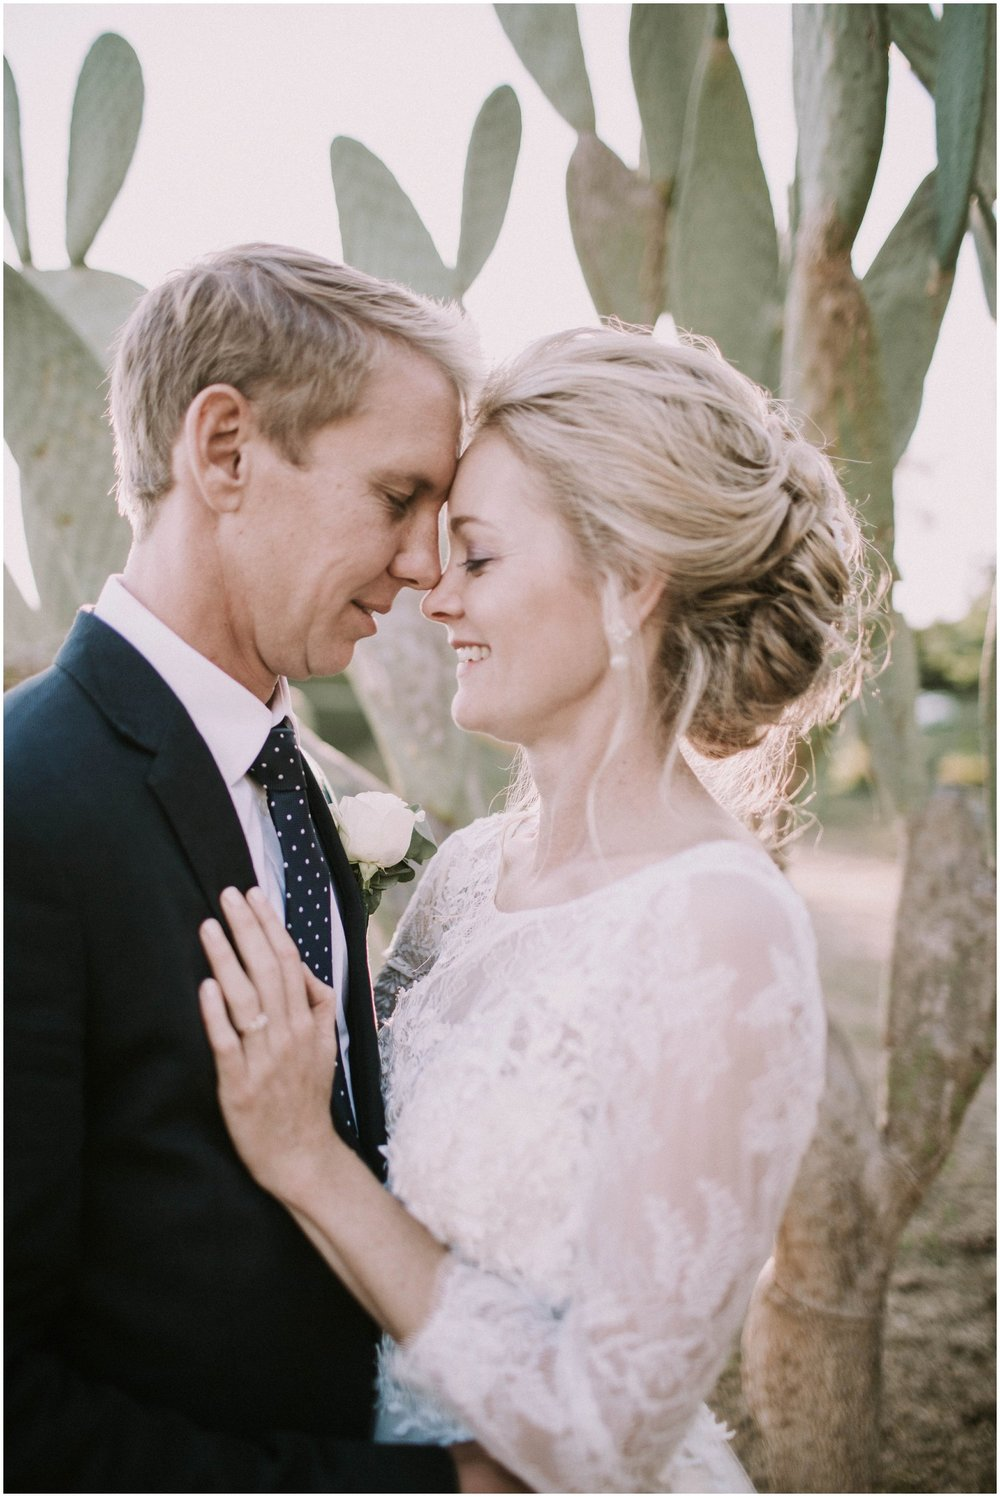 Top Wedding Photographer Cape Town South Africa Artistic Creative Documentary Wedding Photography Rue Kruger_0731.jpg